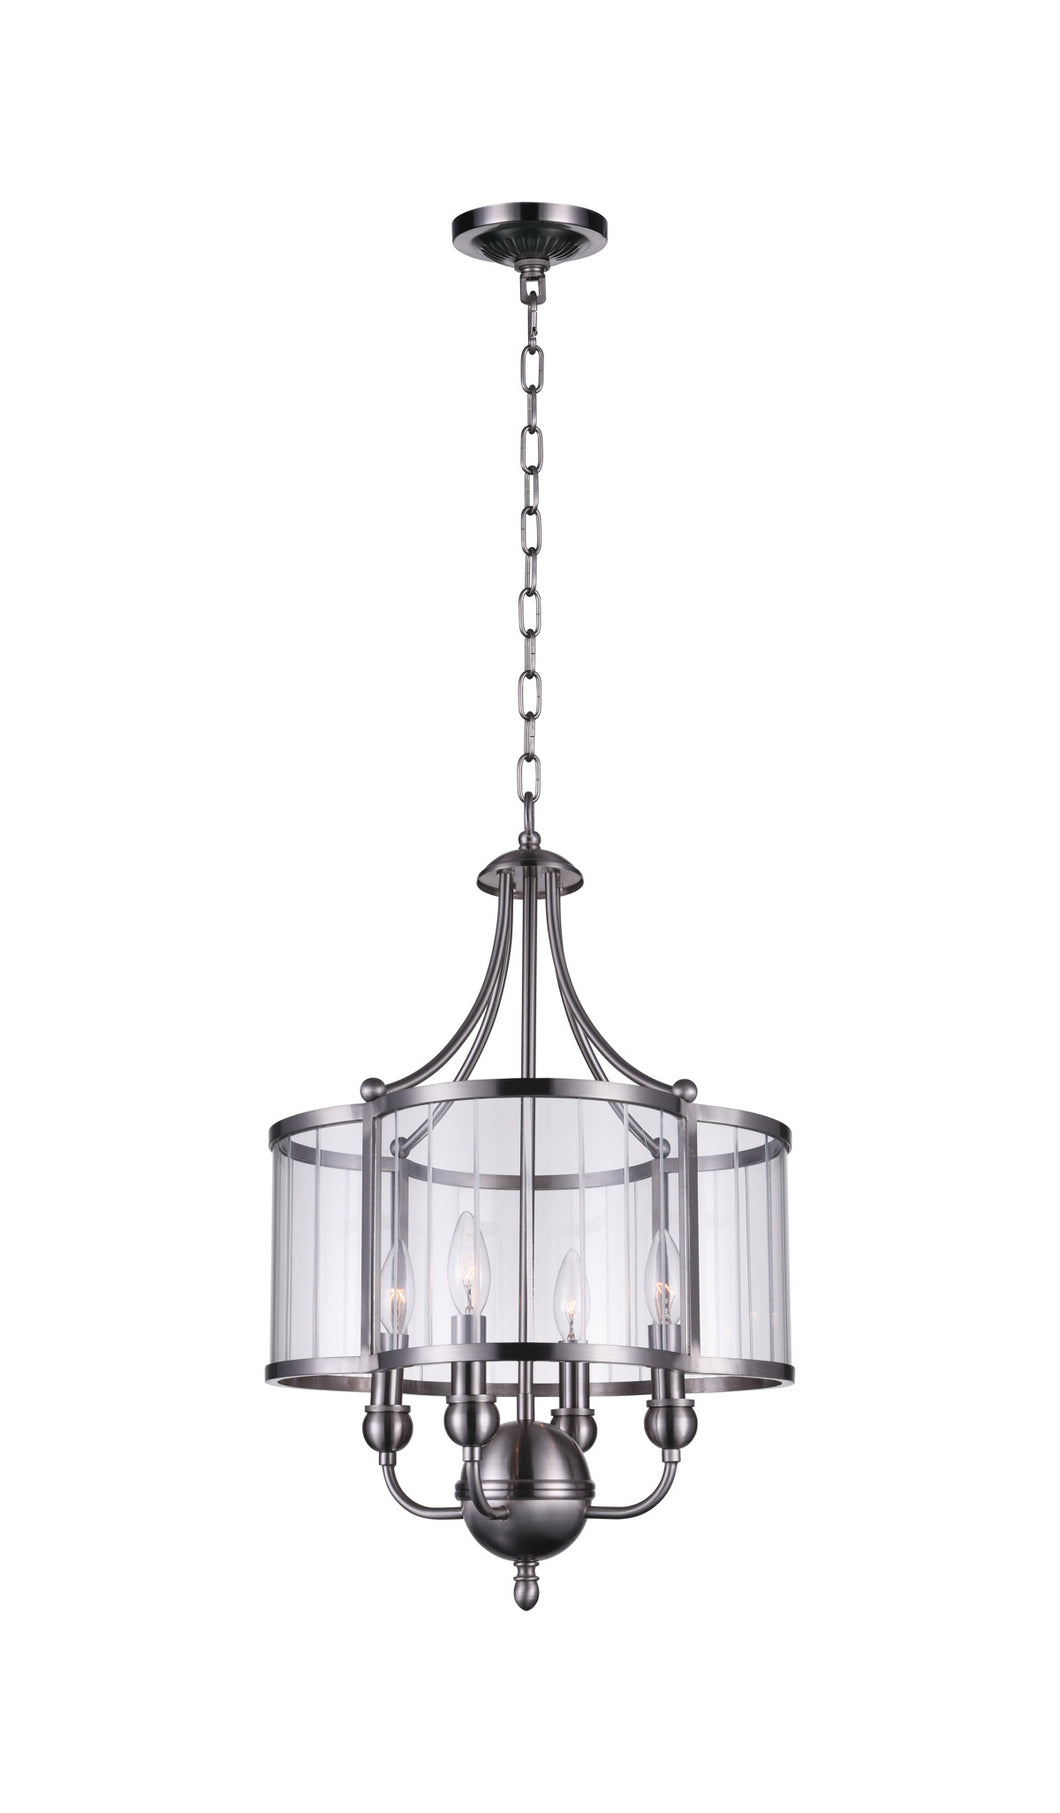 4 Light Drum Shade Pendant with Satin Nickel finish